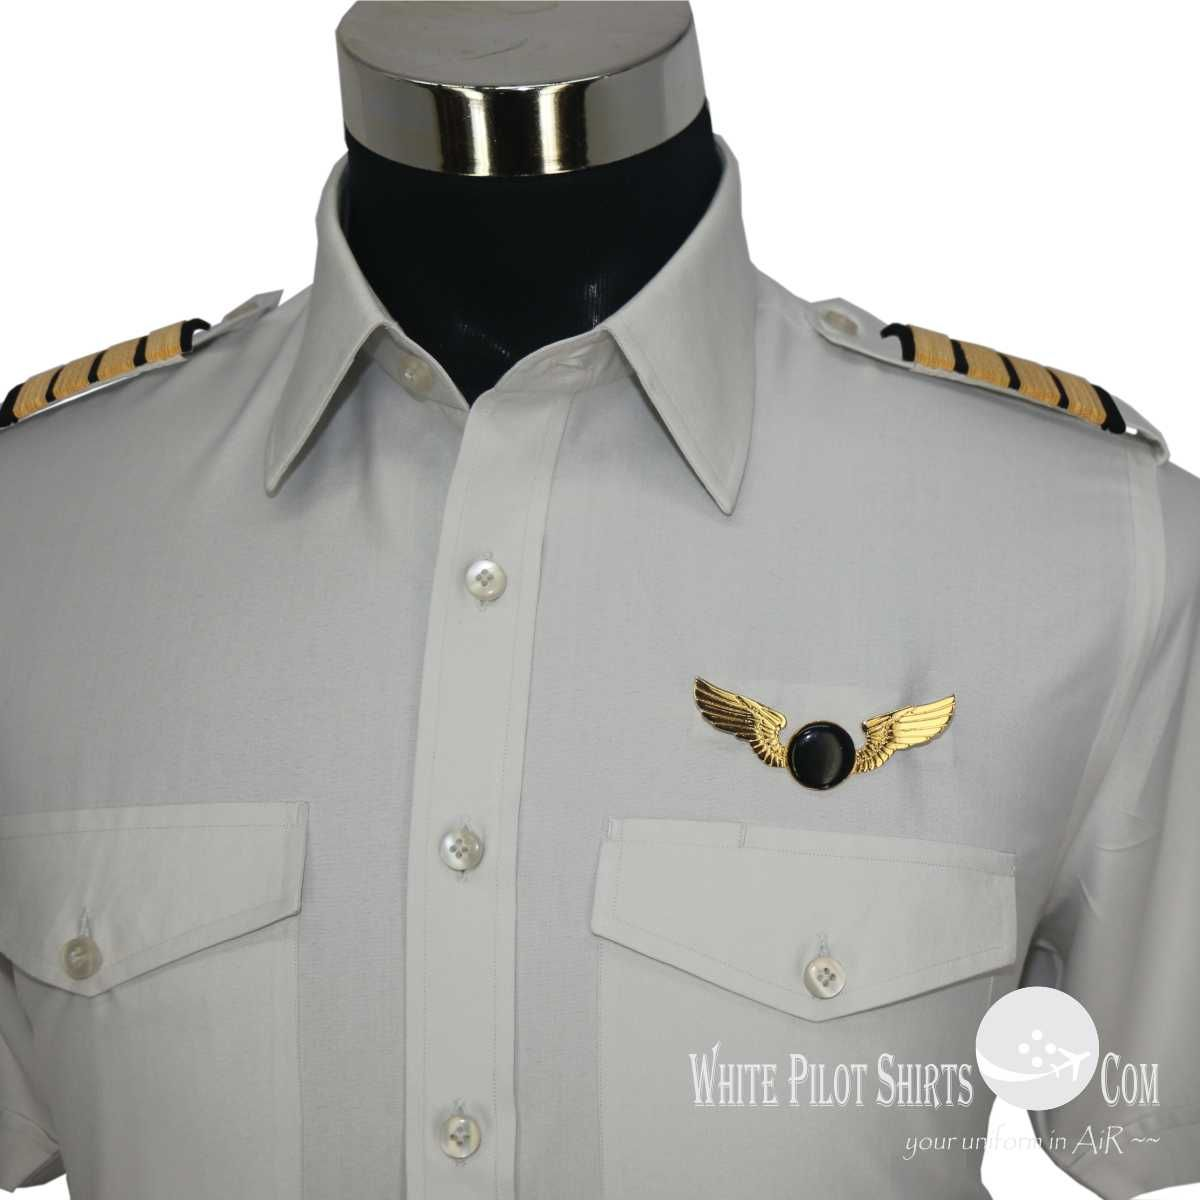 Grey Pilot Shirts Made To Measure And Ready To Wear Male And Female Shirts Pilot Shirt Pilot Uniform Shirts [ 1200 x 1200 Pixel ]